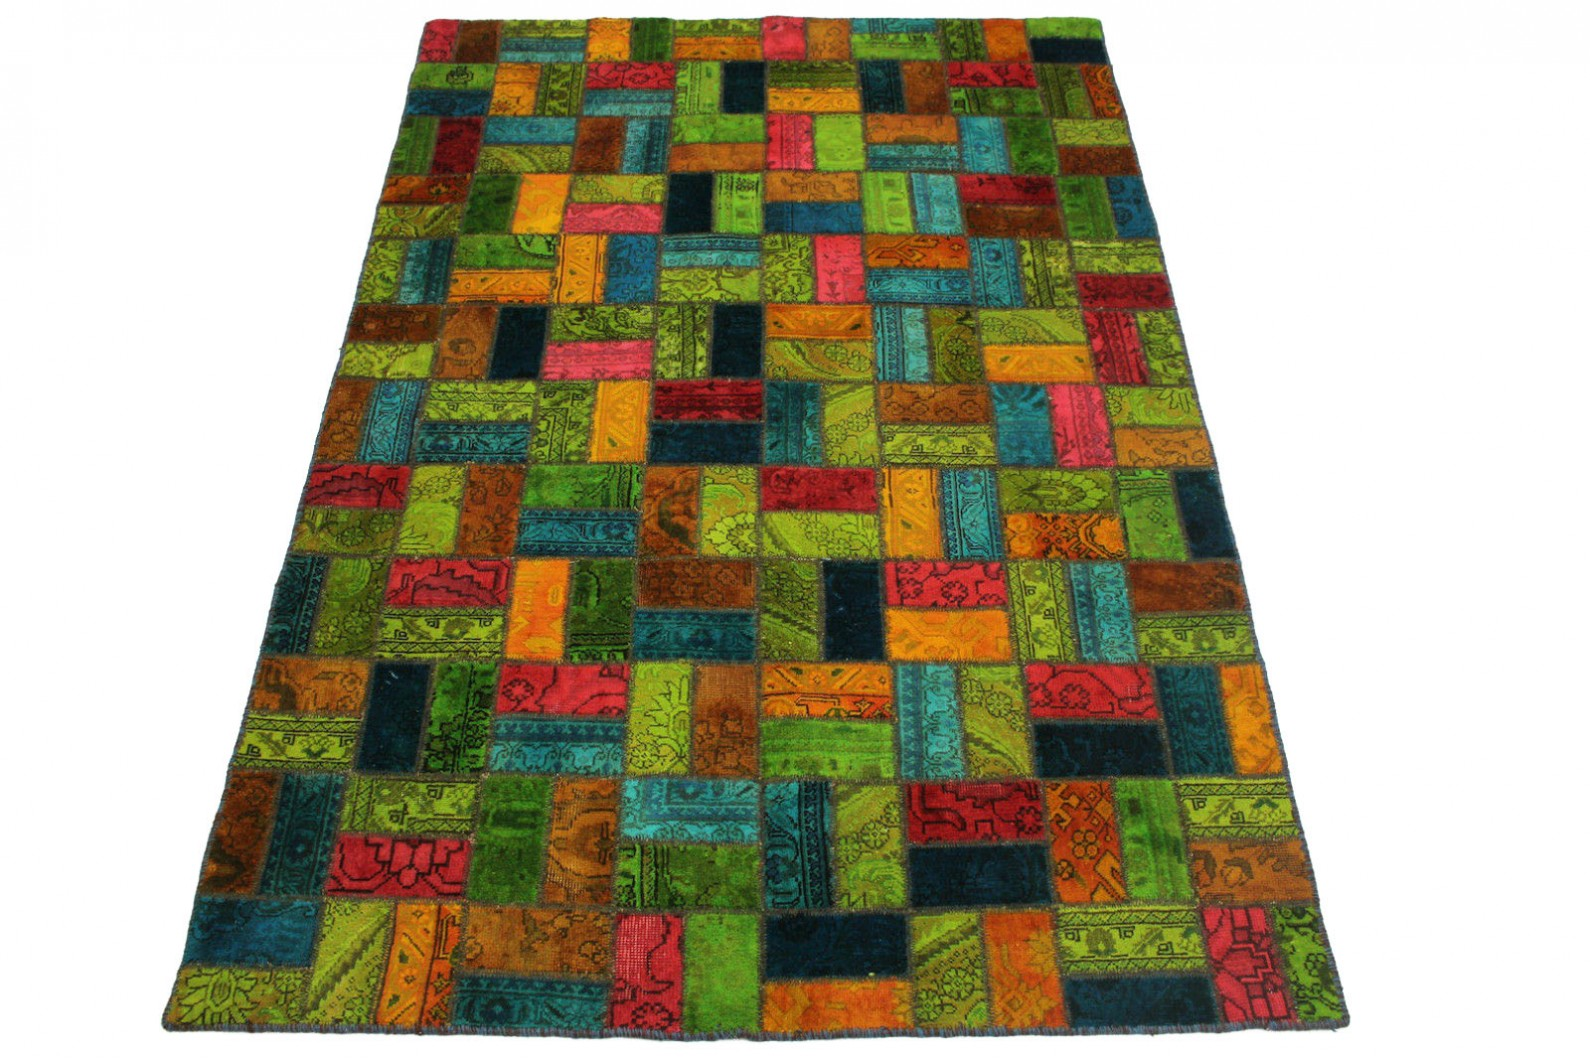 Patchwork Teppich Orange Grün Blau Türkis in 250x160cm (1 / 4)